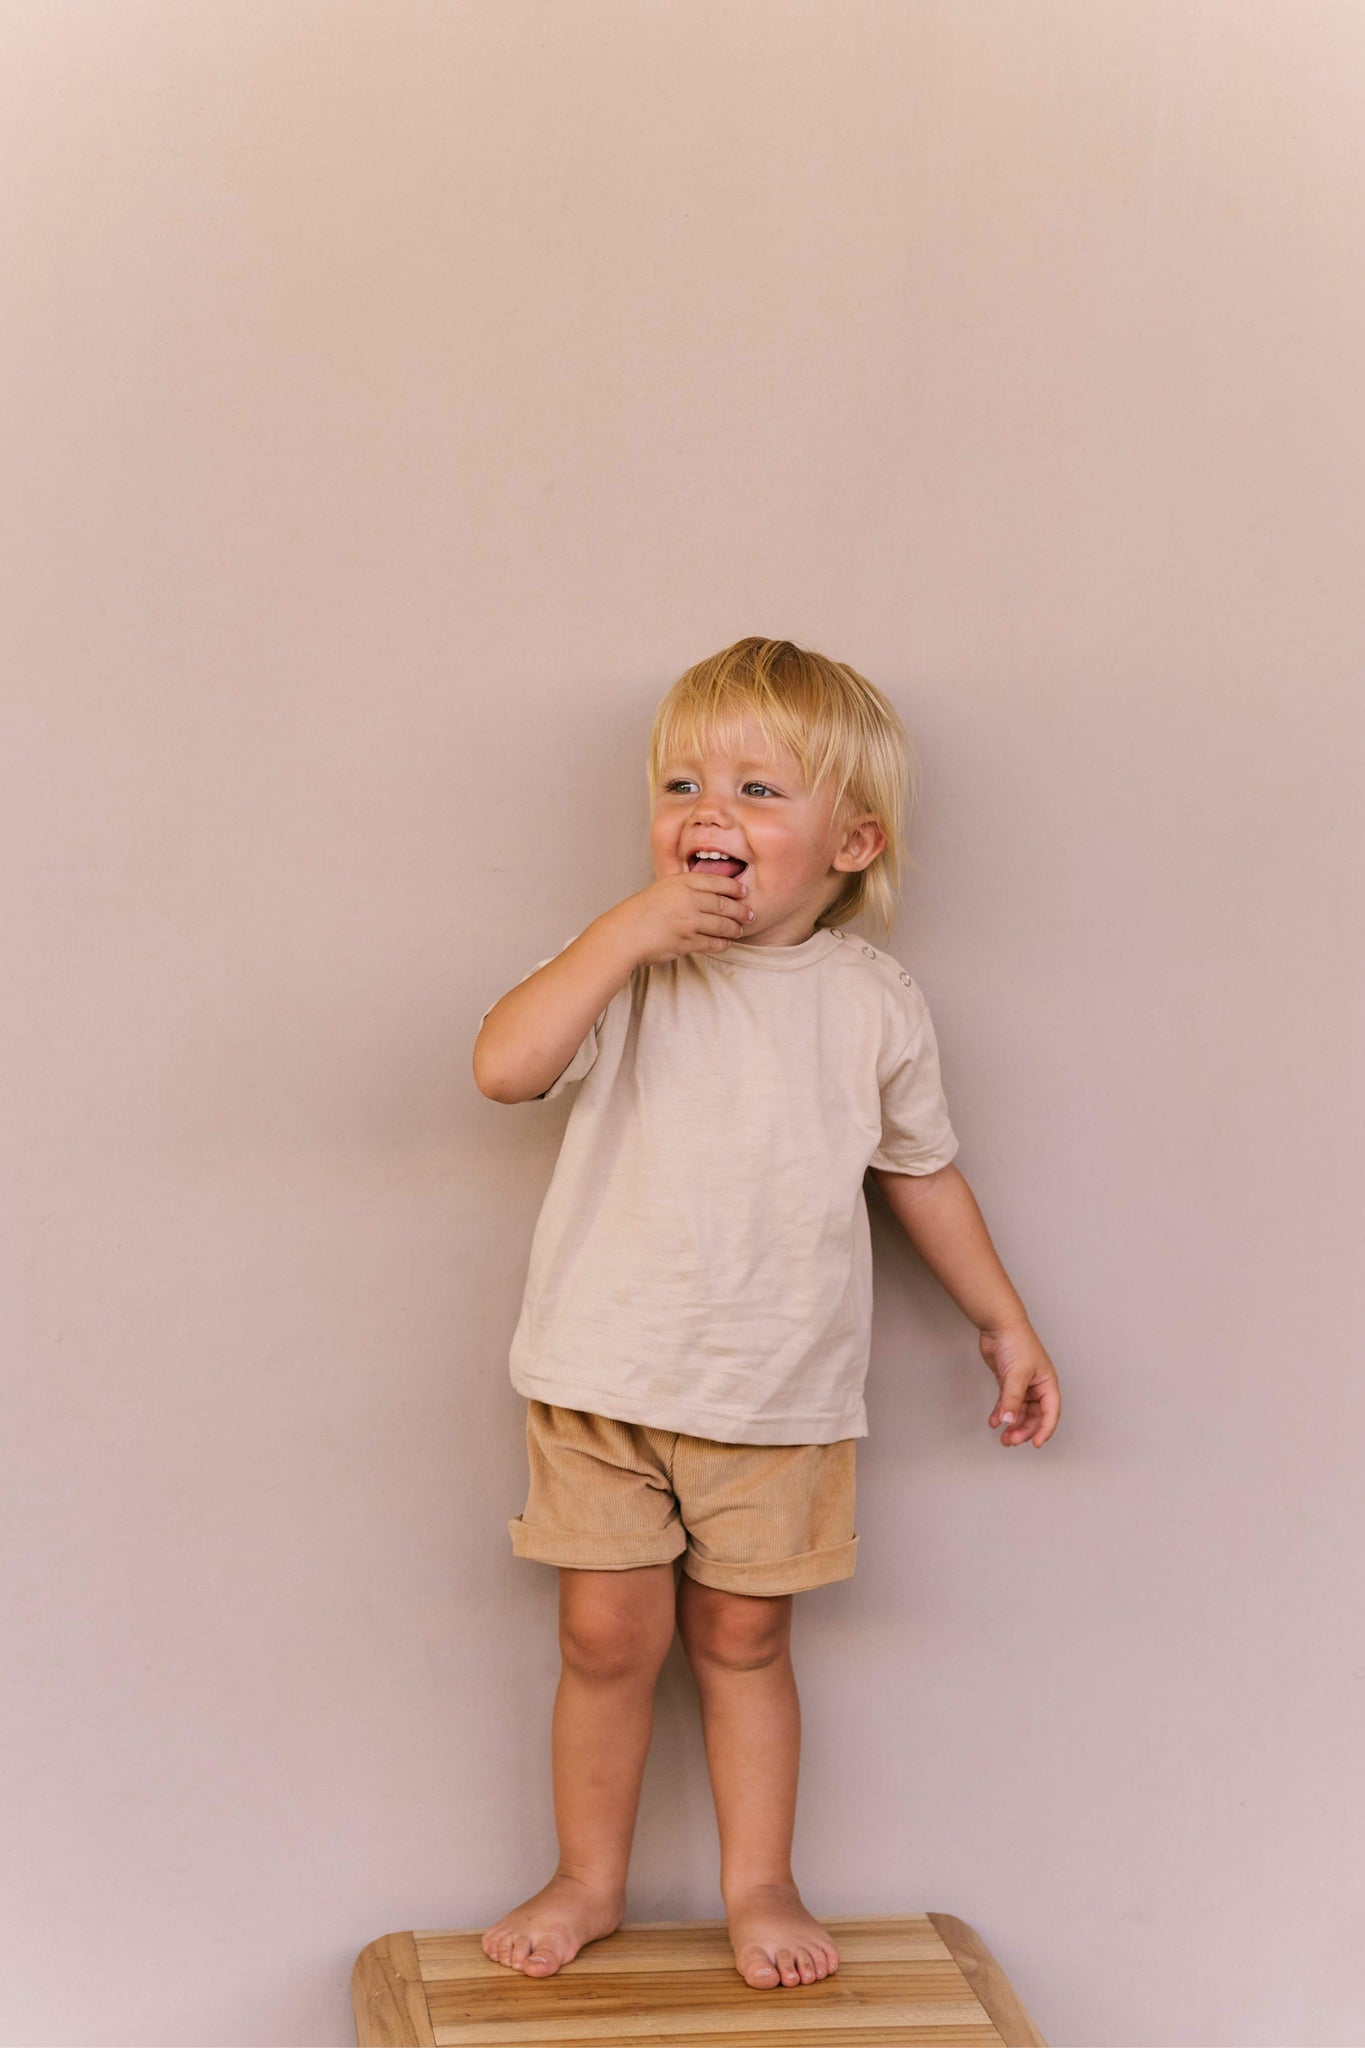 Paper Plane - The Goods We Found - Children's Clothing - NZ